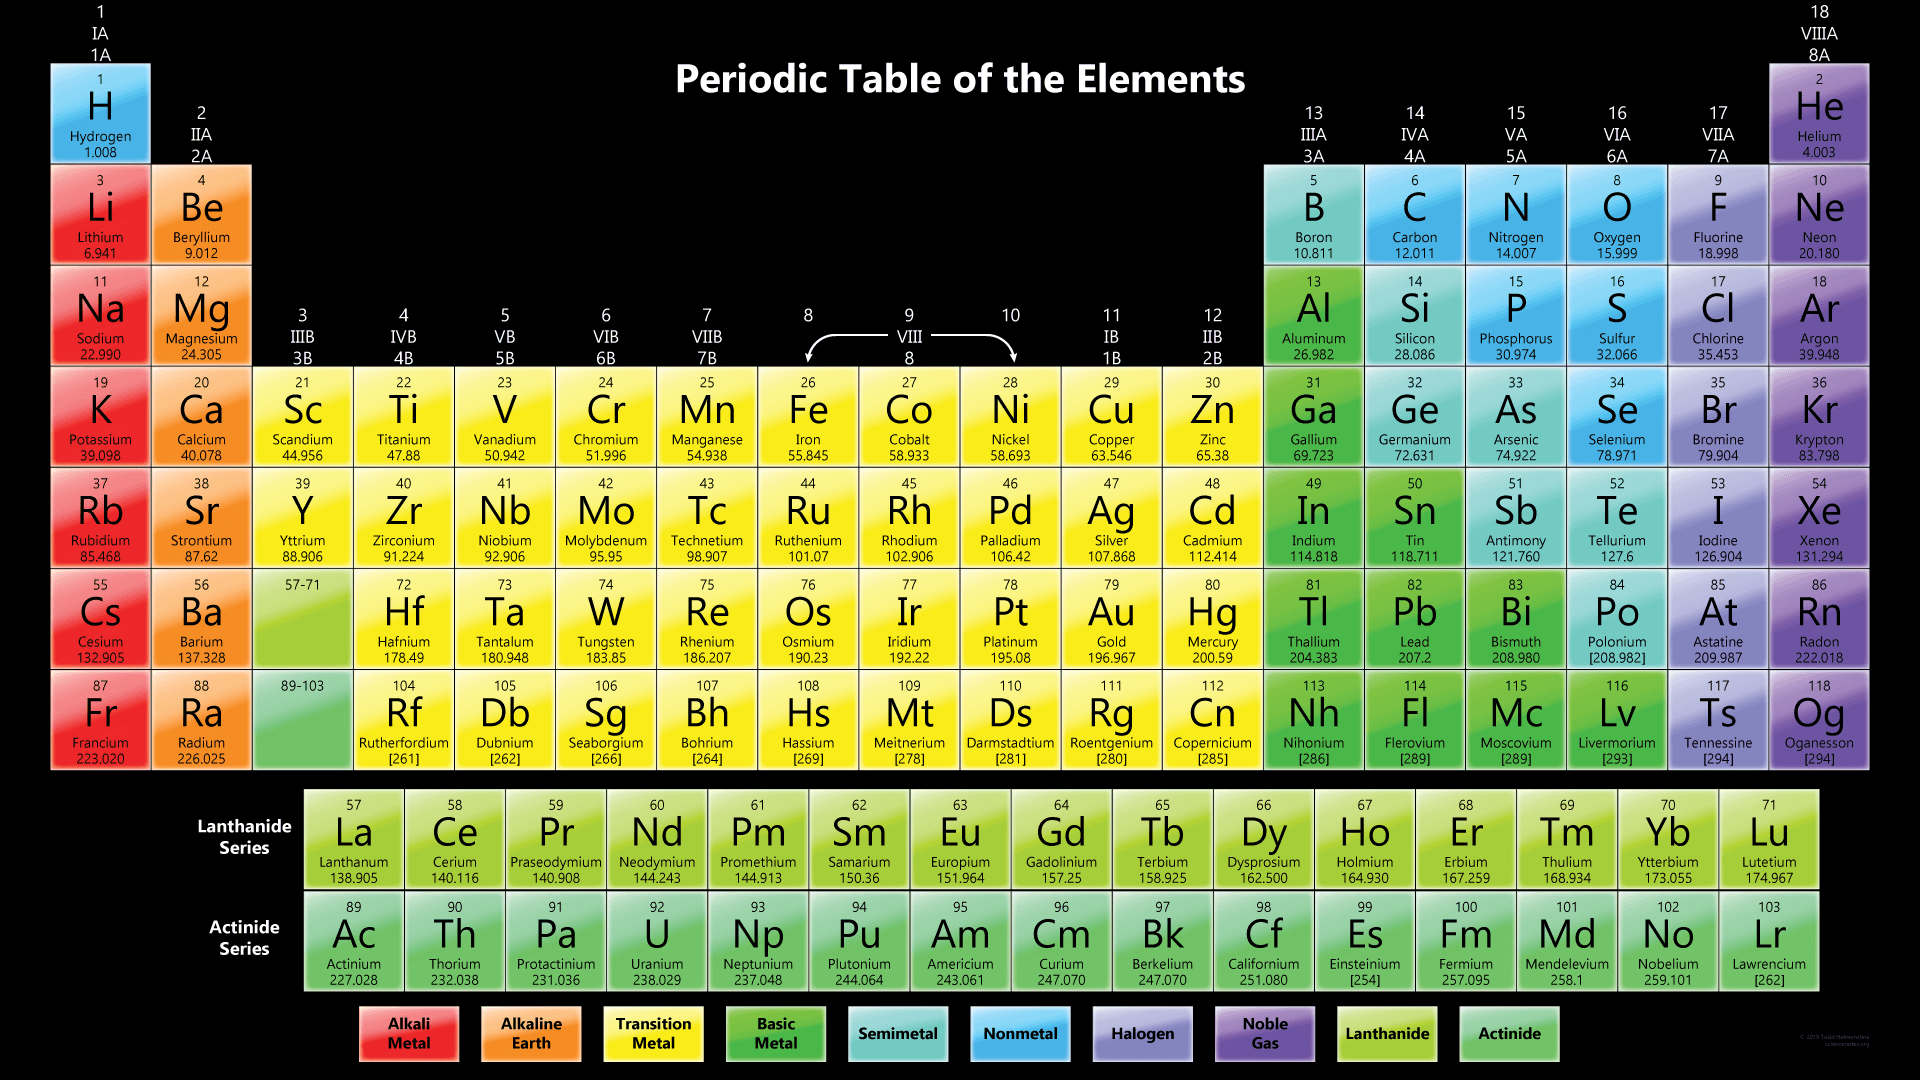 Colorful Periodic Table With 118 Elements Wallpaper - Black Background